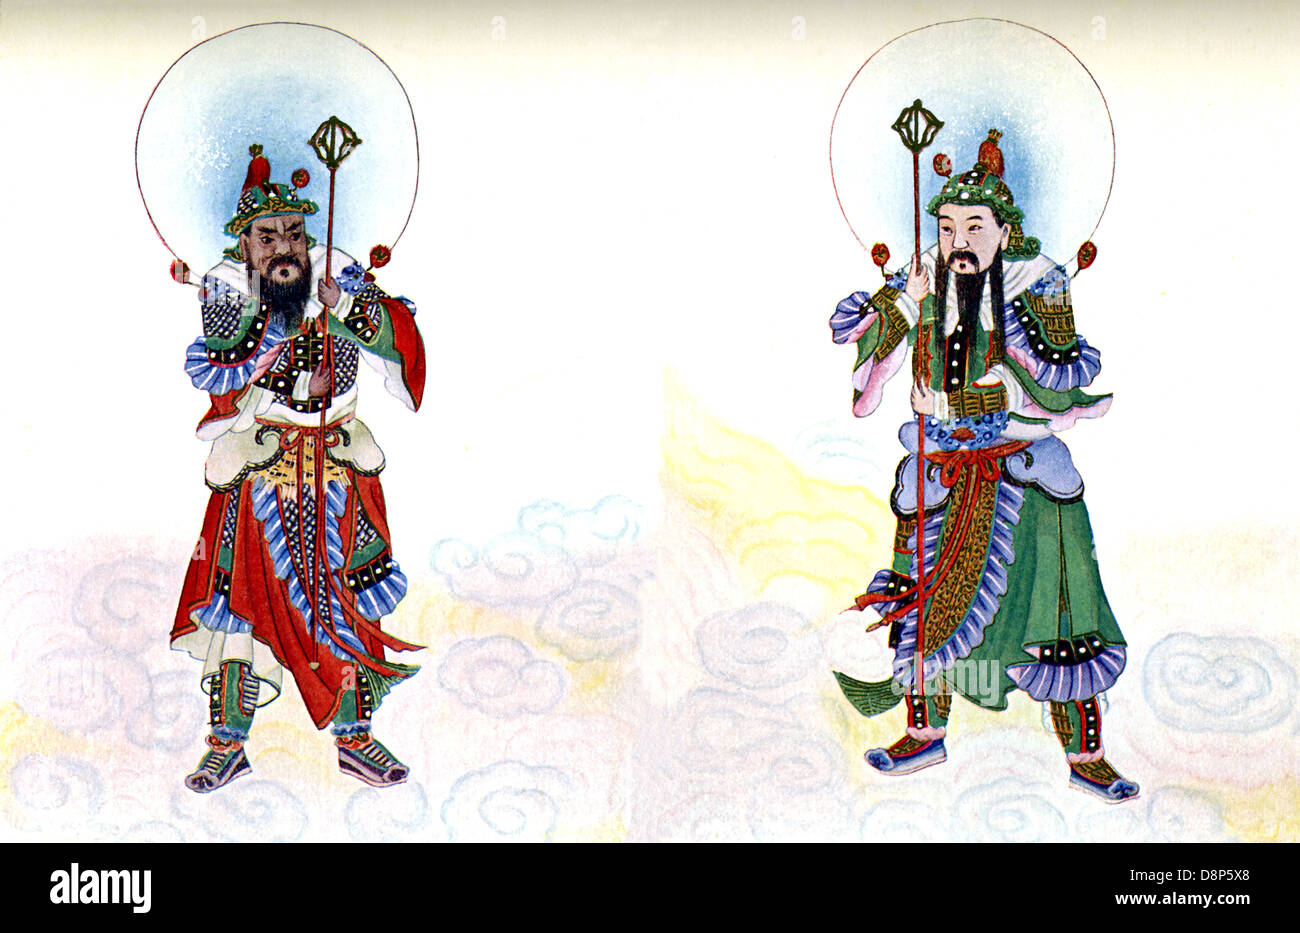 According to Chinese mythology, Shen Shu (left) and Yu Lei were ordered to guard the Door of the Devils. - Stock Image